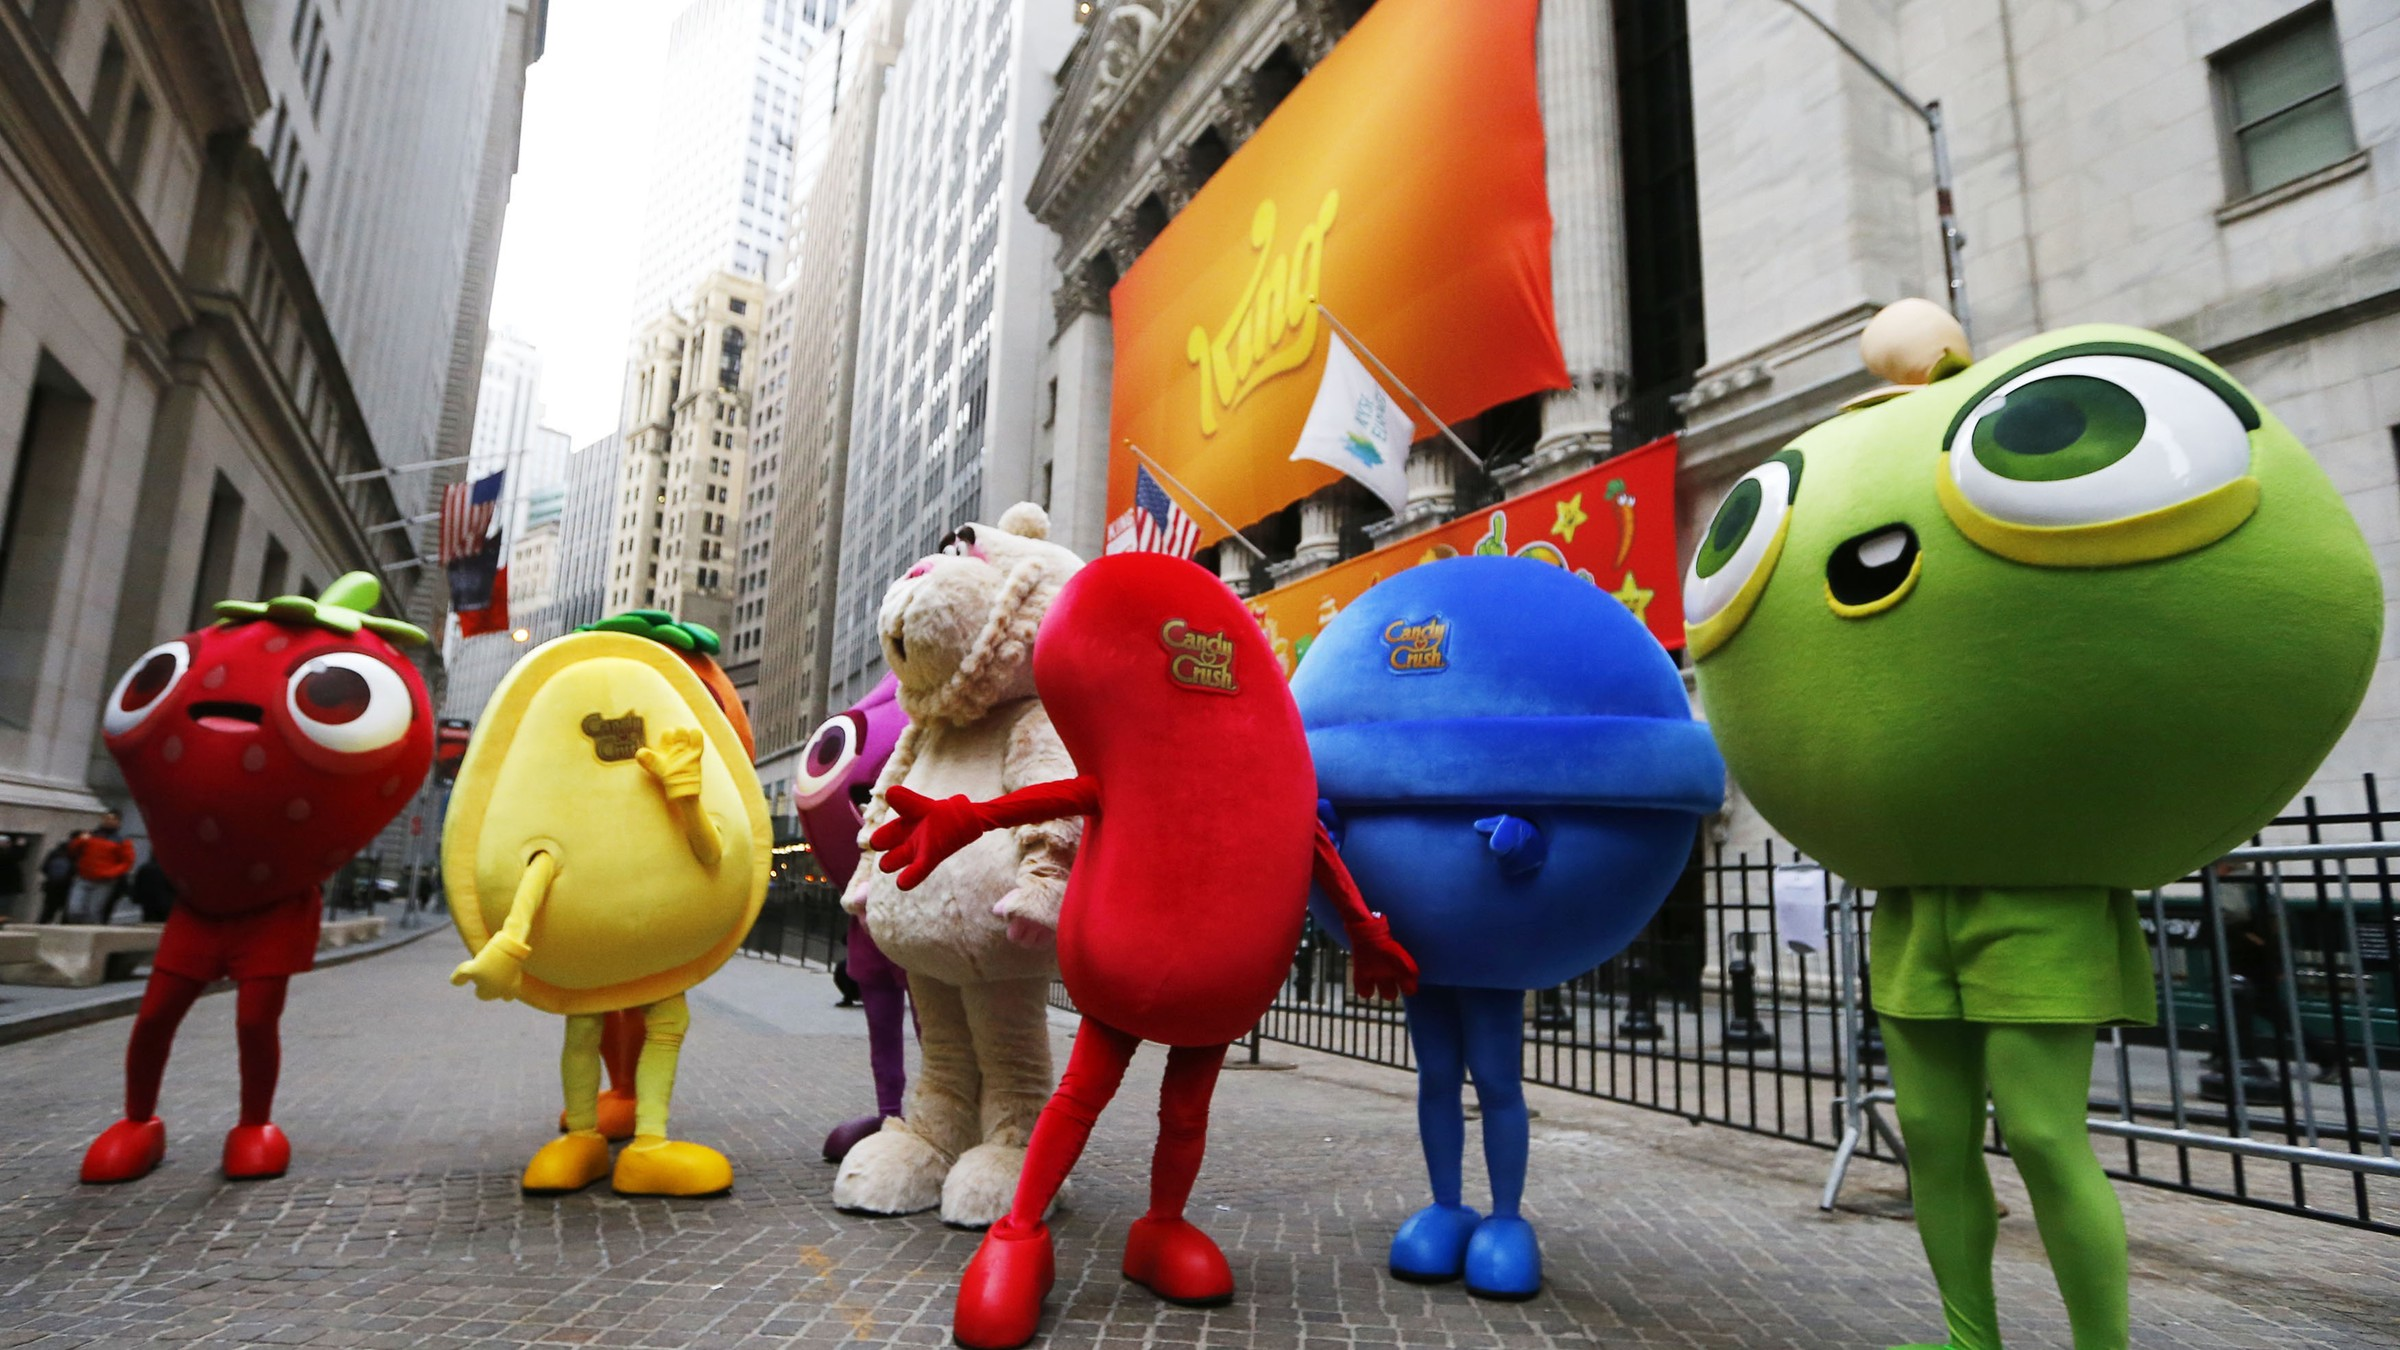 """Mascots dressed as characters from the mobile video game """"Candy Crush Saga"""" pose outside the New York Stock Exchange ahead of the IPO of Mobile game maker King Digital Entertainment Plc March 26, 2014. REUTERS/Brendan McDermid (UNITED STATES - Tags: BUSINESS SCIENCE TECHNOLOGY ENTERTAINMENT)"""